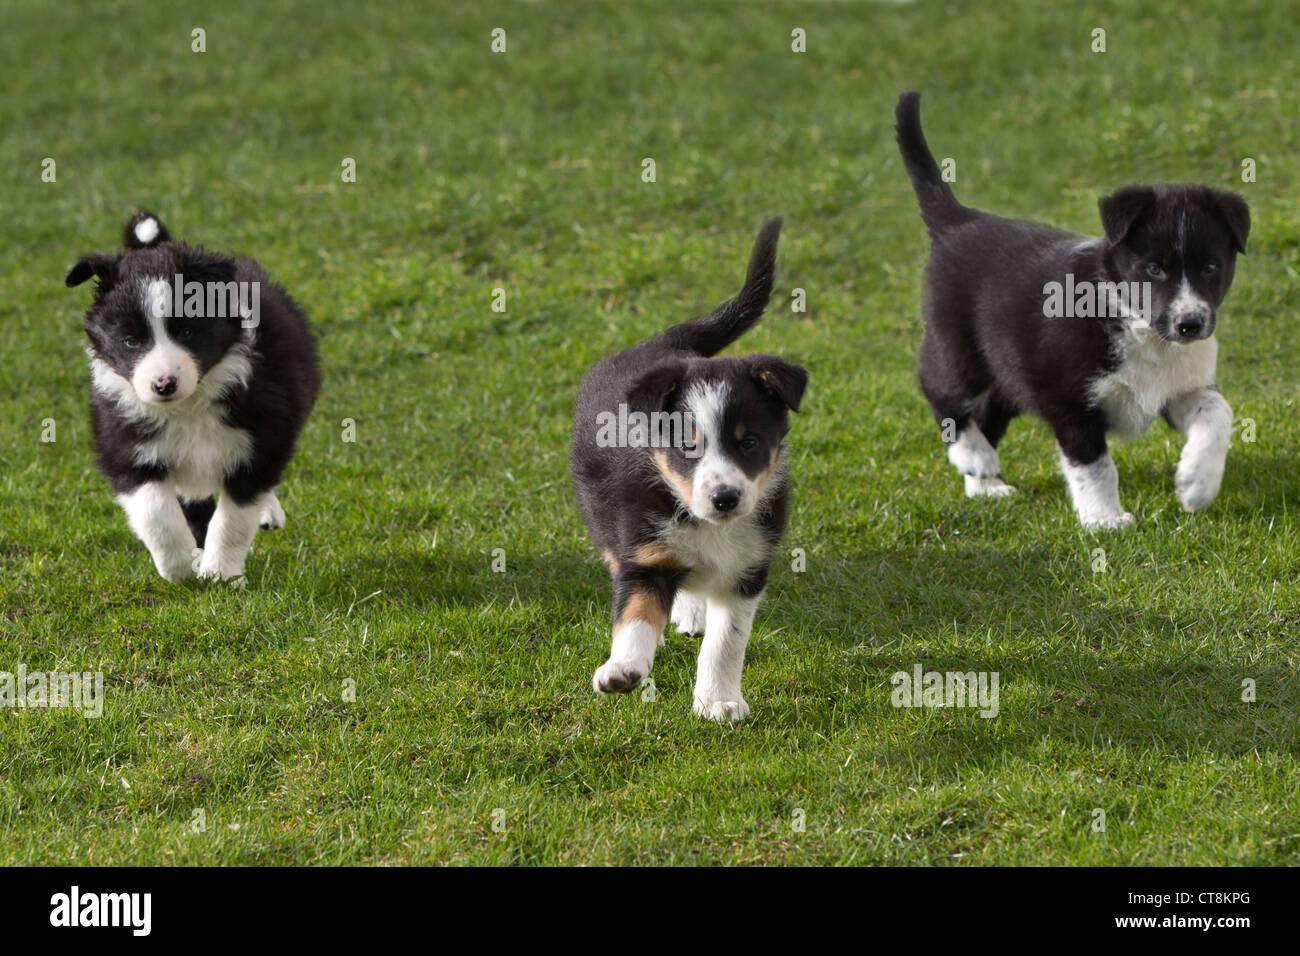 Border collie puppies black  white puppies Stock Photo Royalty